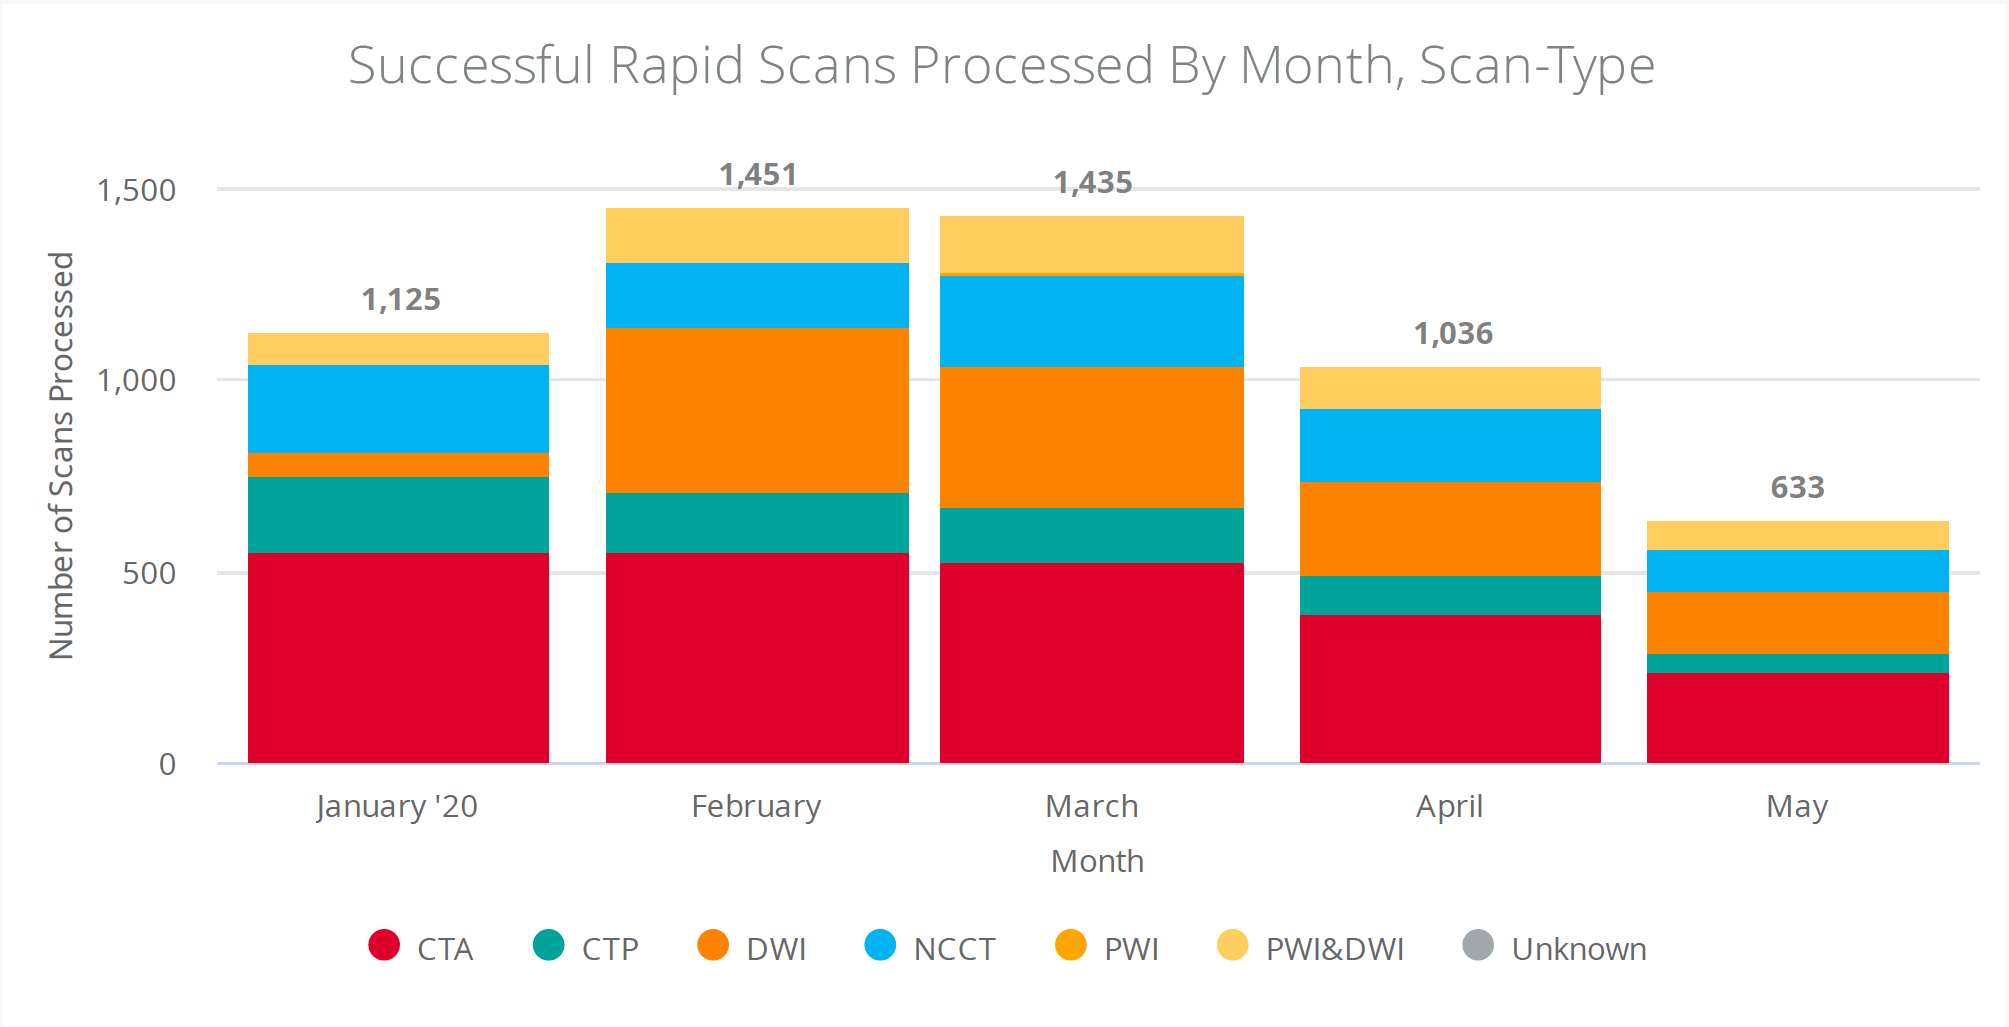 Successfull Rapid scans by month, scan-type